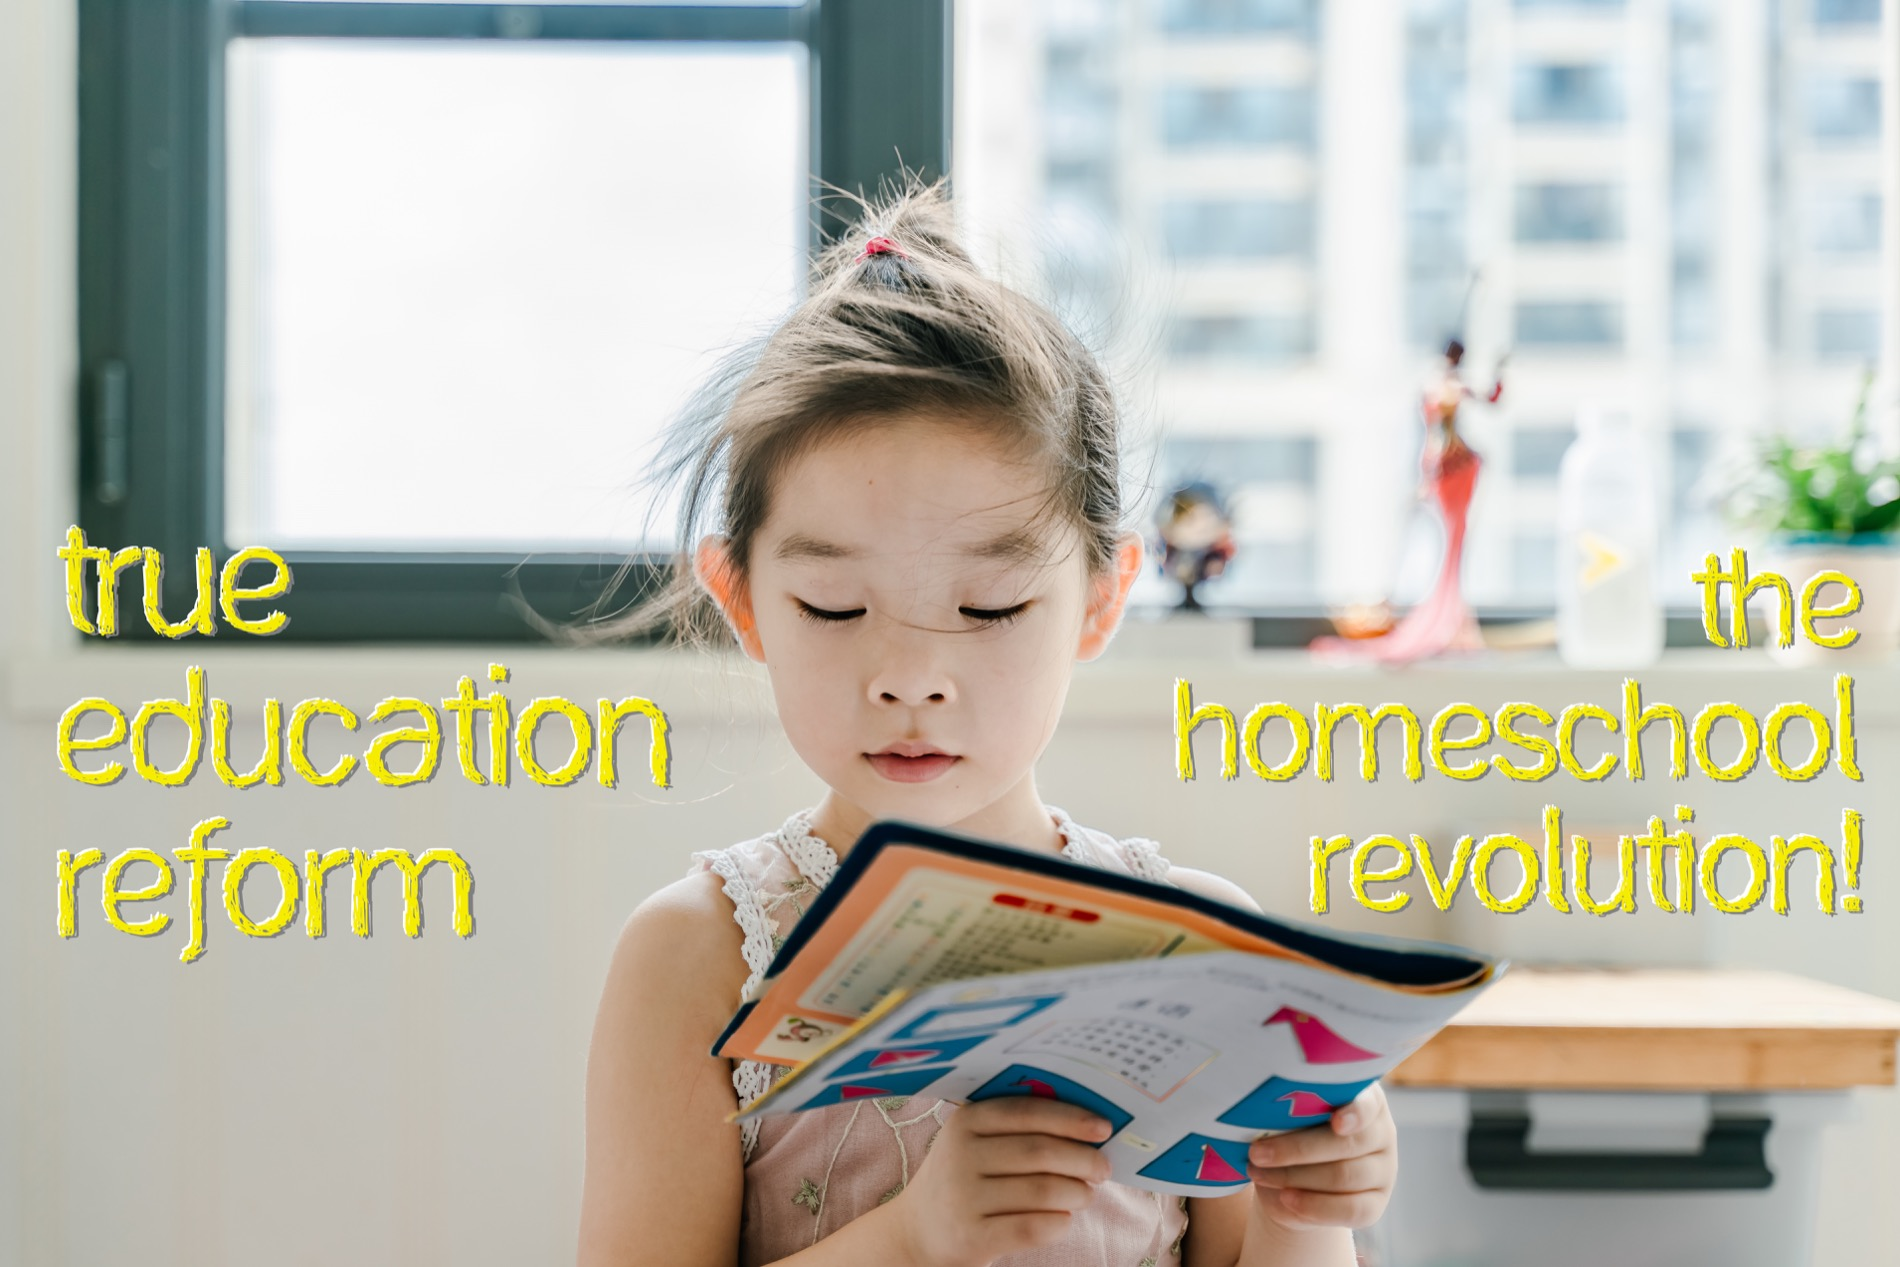 True Education Reform, The Homeschool Revolution!